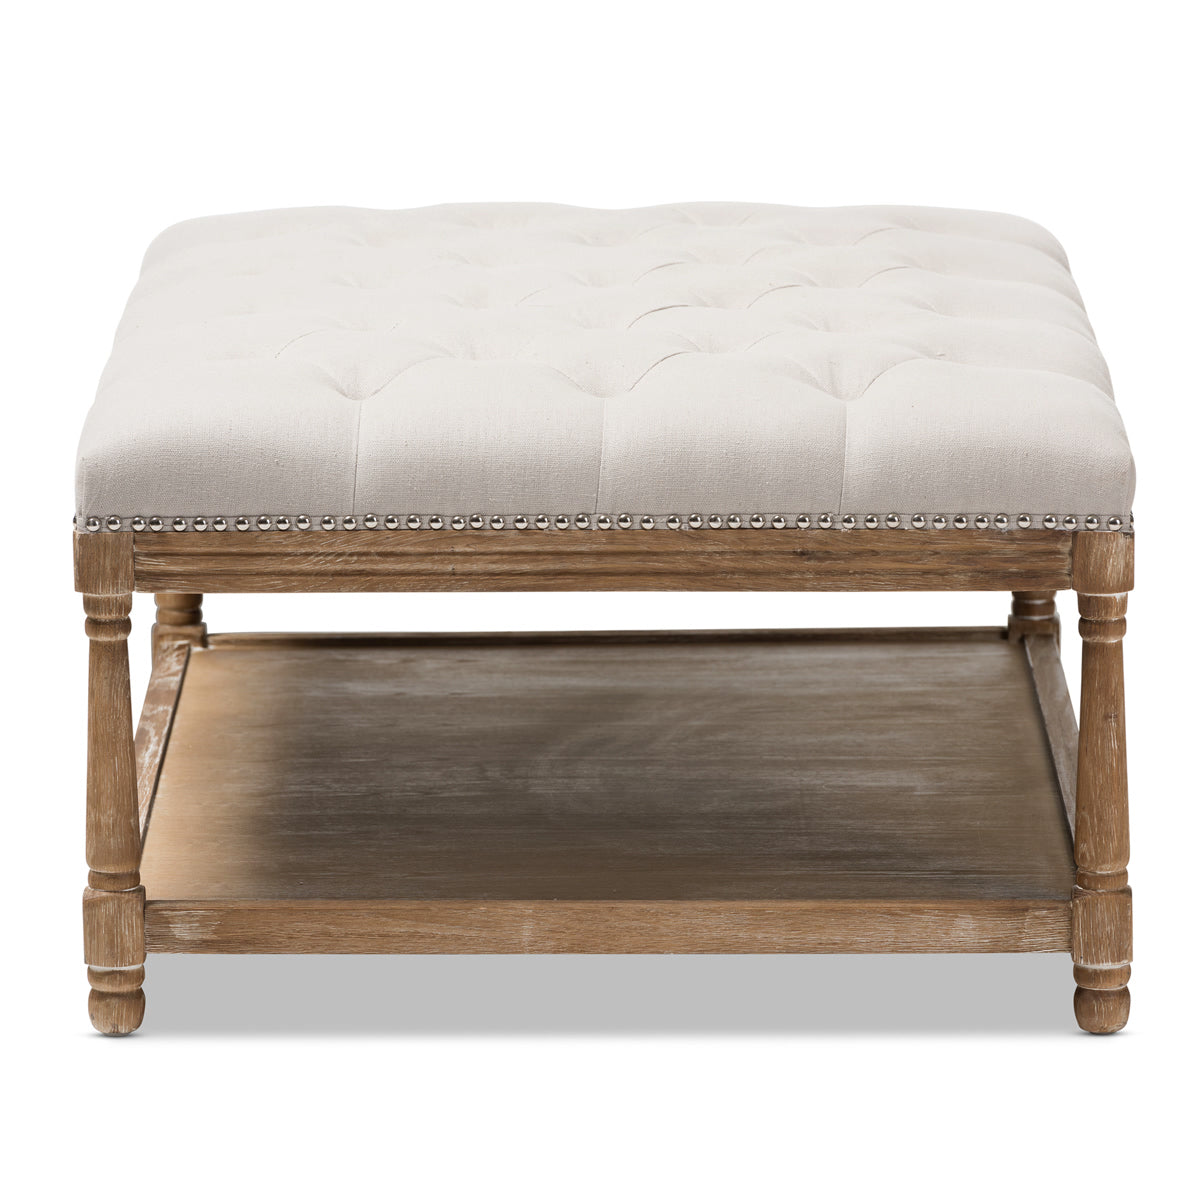 ... Baxton Studio Carlotta Oak Beige Linen Rectangular Coffee Table Ottoman    3 ...